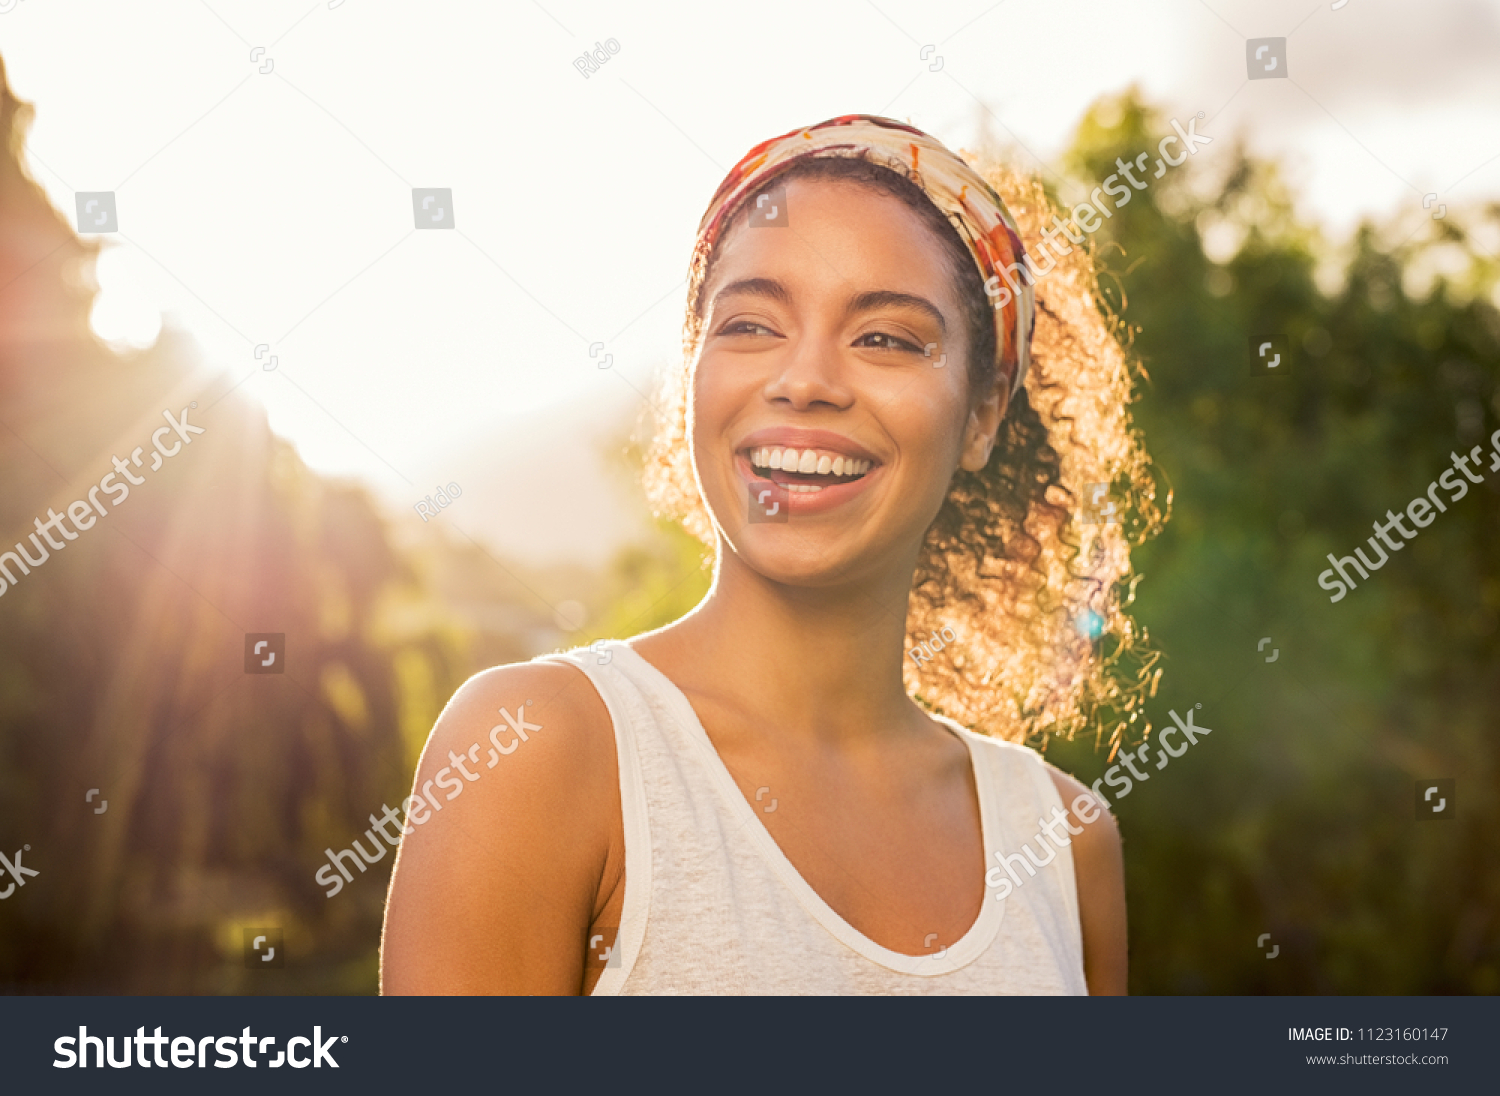 Portrait of beautiful african american woman smiling and looking away at park during sunset. Outdoor portrait of a smiling black girl. Happy cheerful girl laughing at park with colored hair band. #1123160147